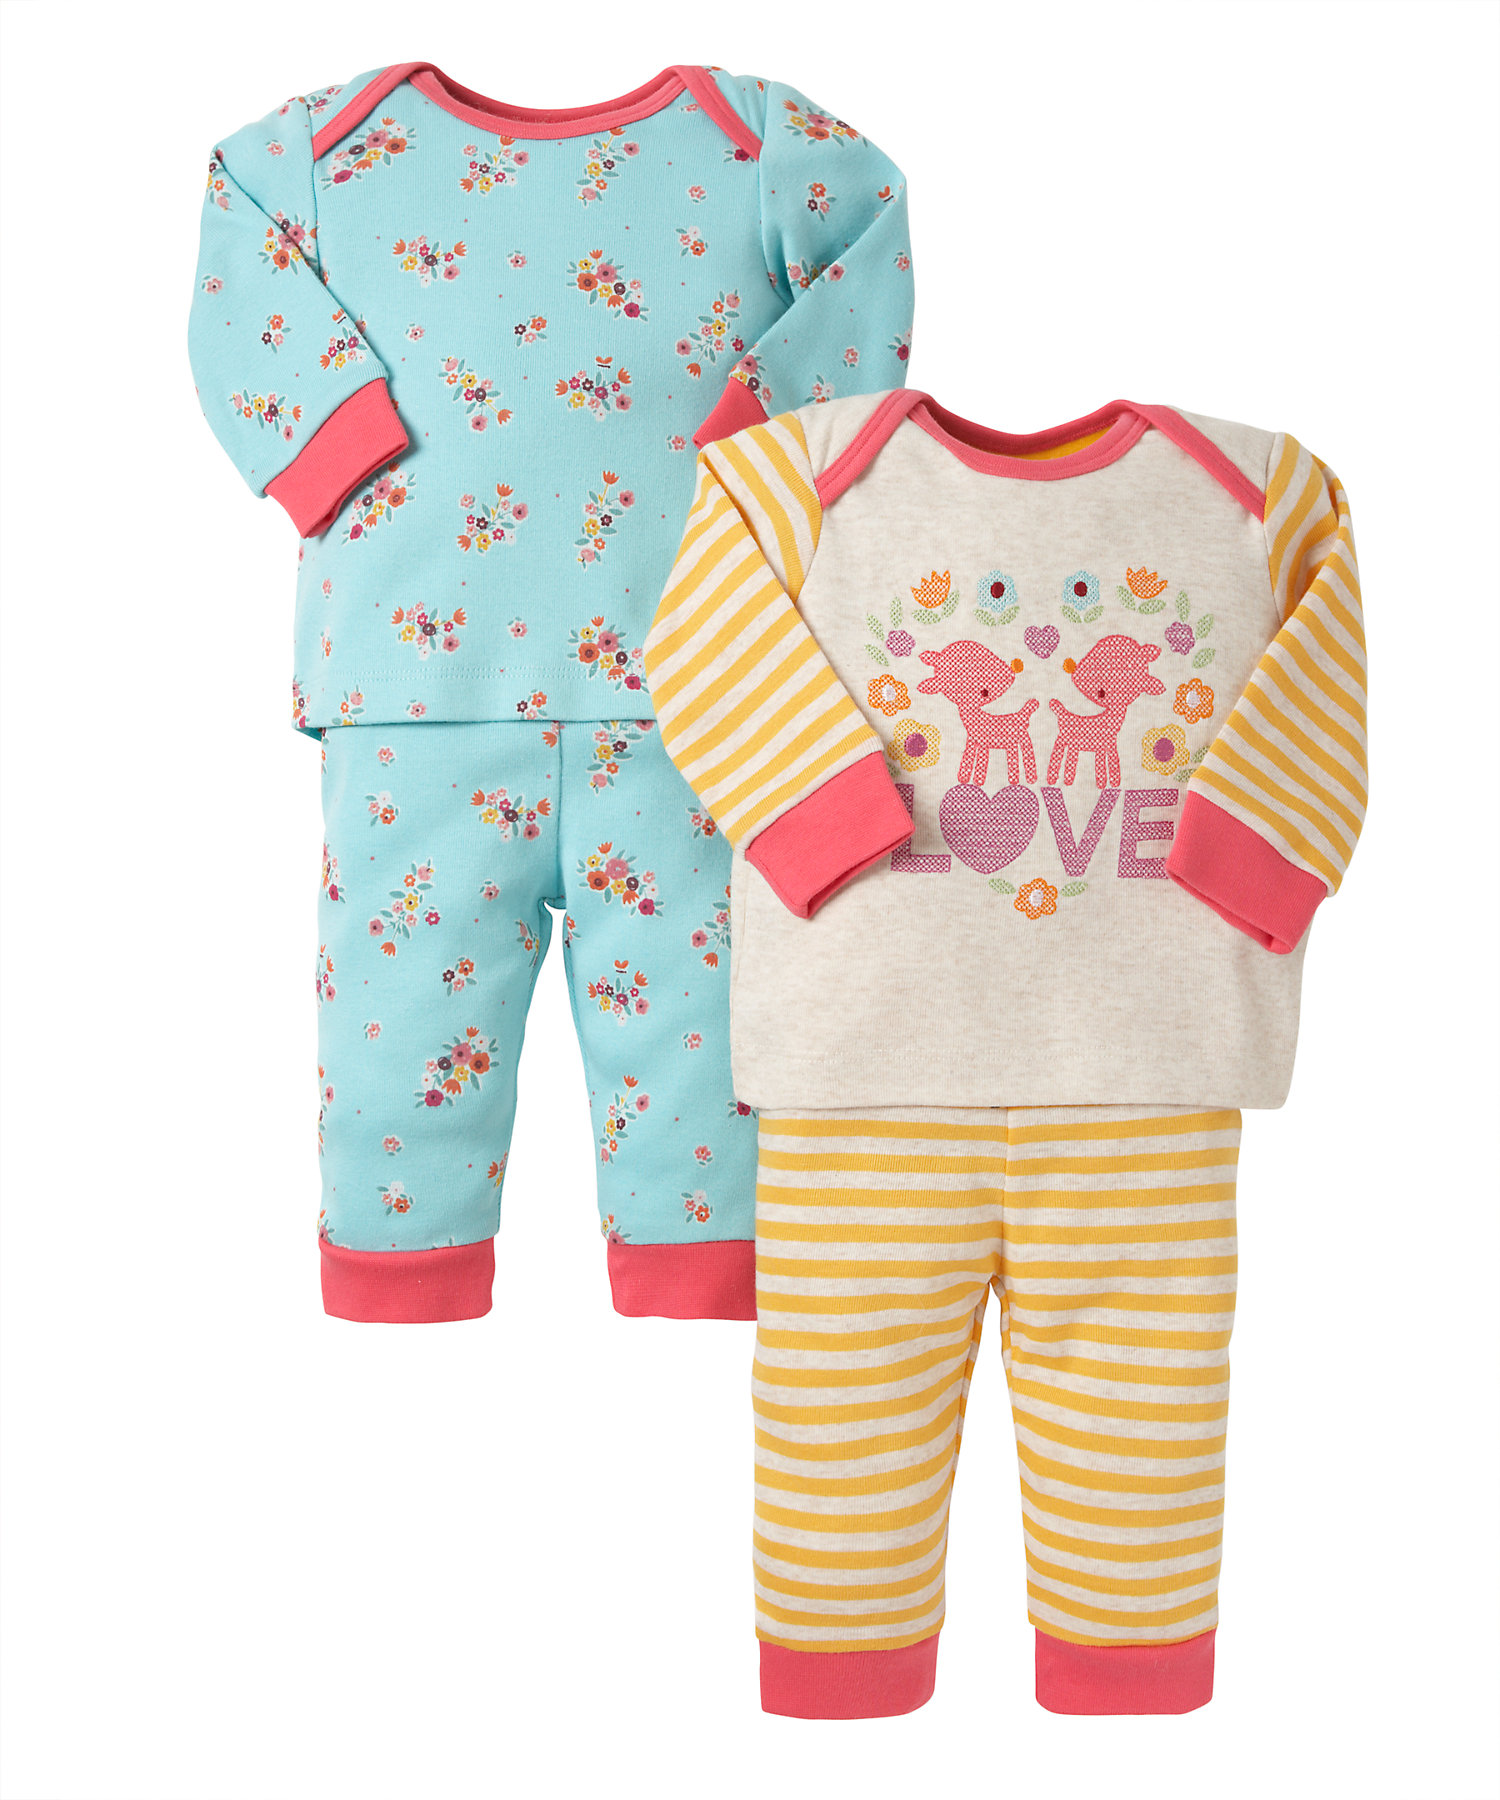 Mothercare | Girls Full Sleeves Pyjama Set Striped And Floral Print - Pack Of 2 - Multicolor